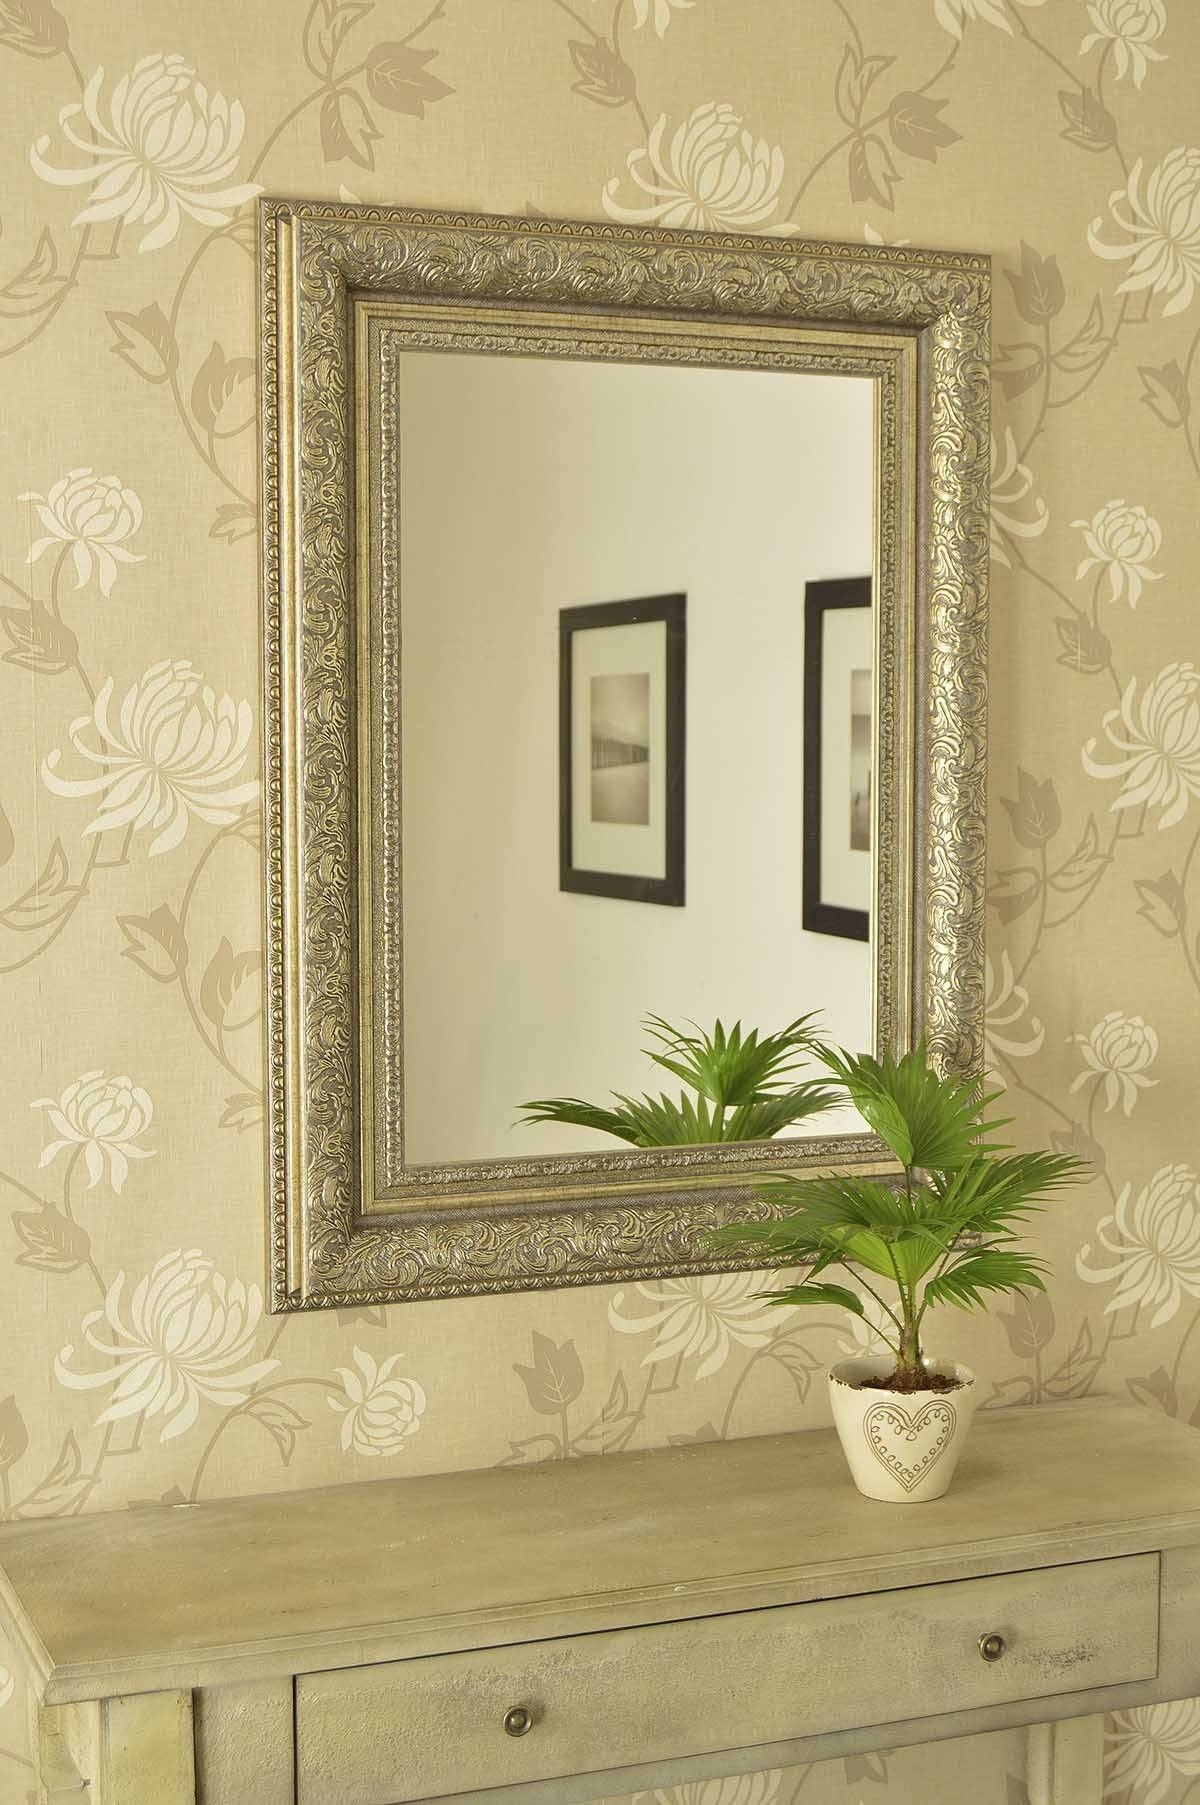 Antique Wall Mirrors Antique Wall Mirrors Large Antique Wall for Cream Ornate Mirrors (Image 1 of 25)